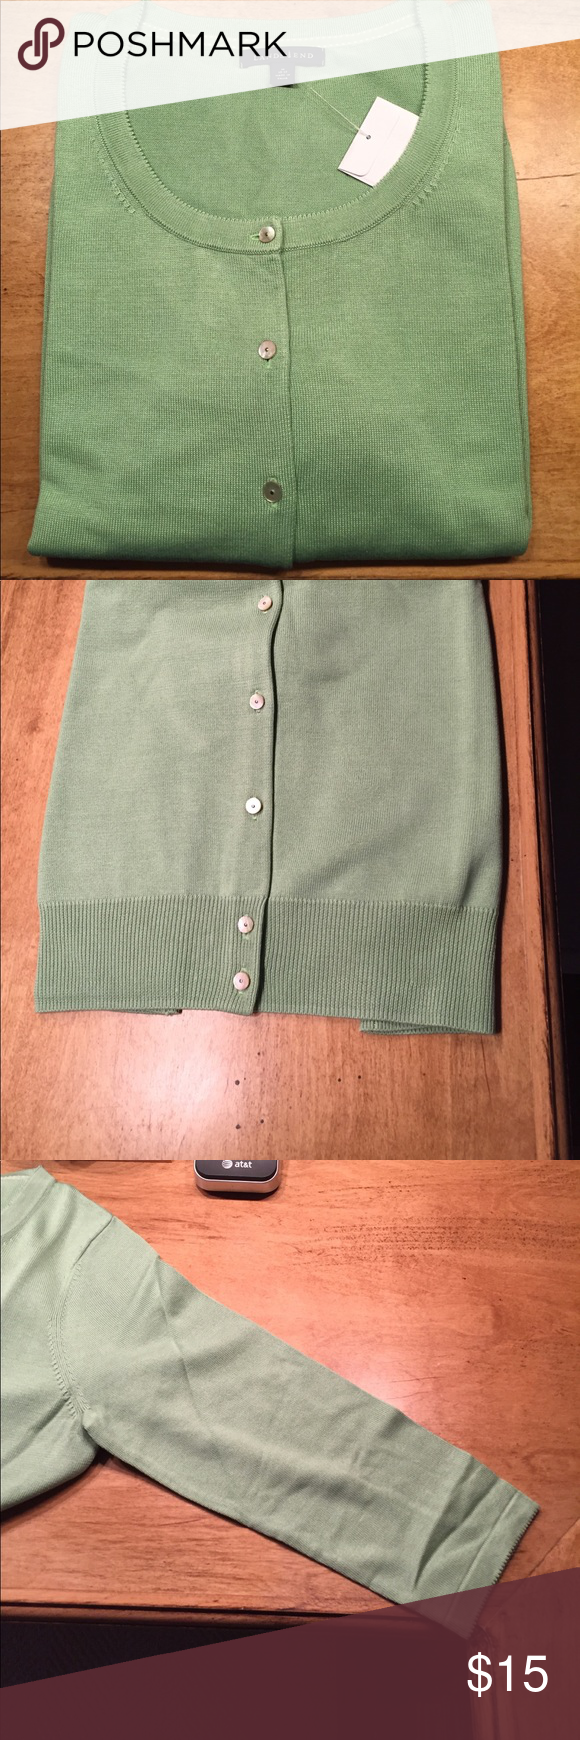 Brand new light green cardigan. This is a new button down cardigan ...